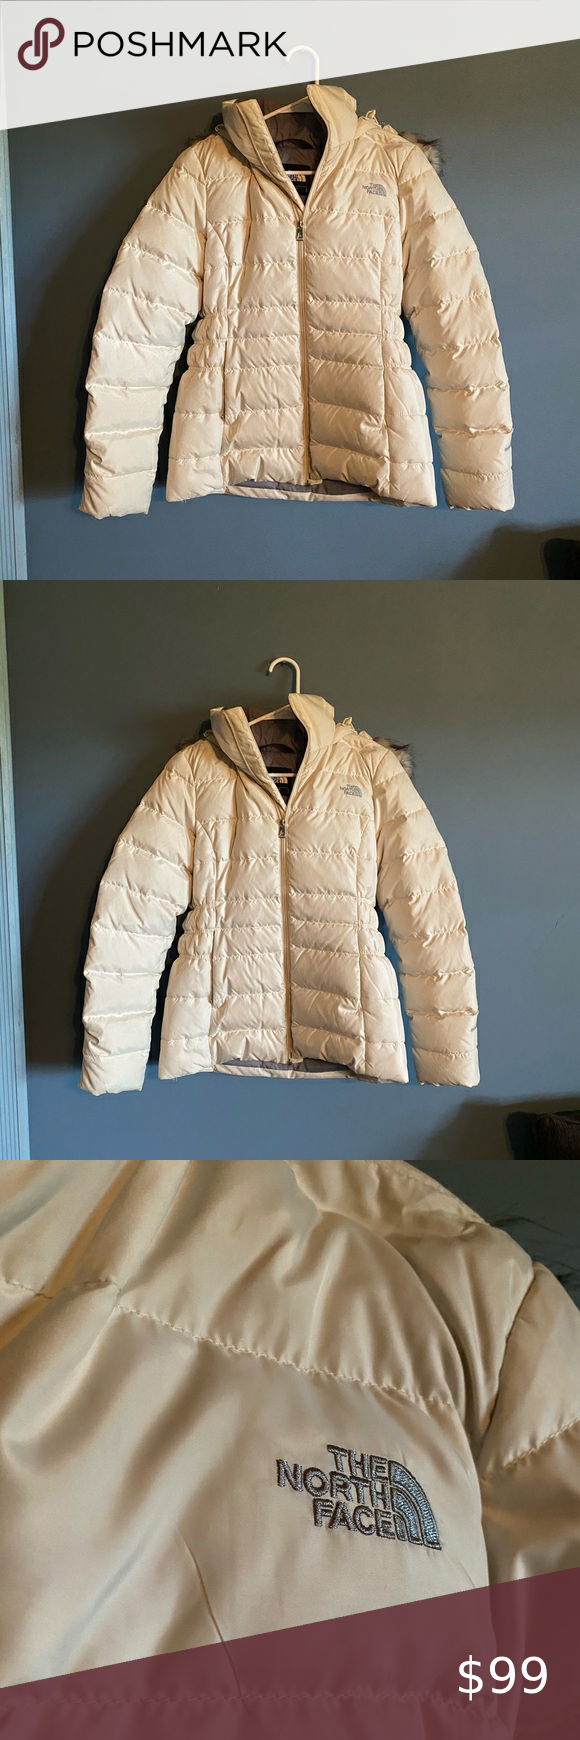 North Face Winter Jacket In 2020 Winter Jacket North Face Winter Jackets Clothes Design [ 1740 x 580 Pixel ]